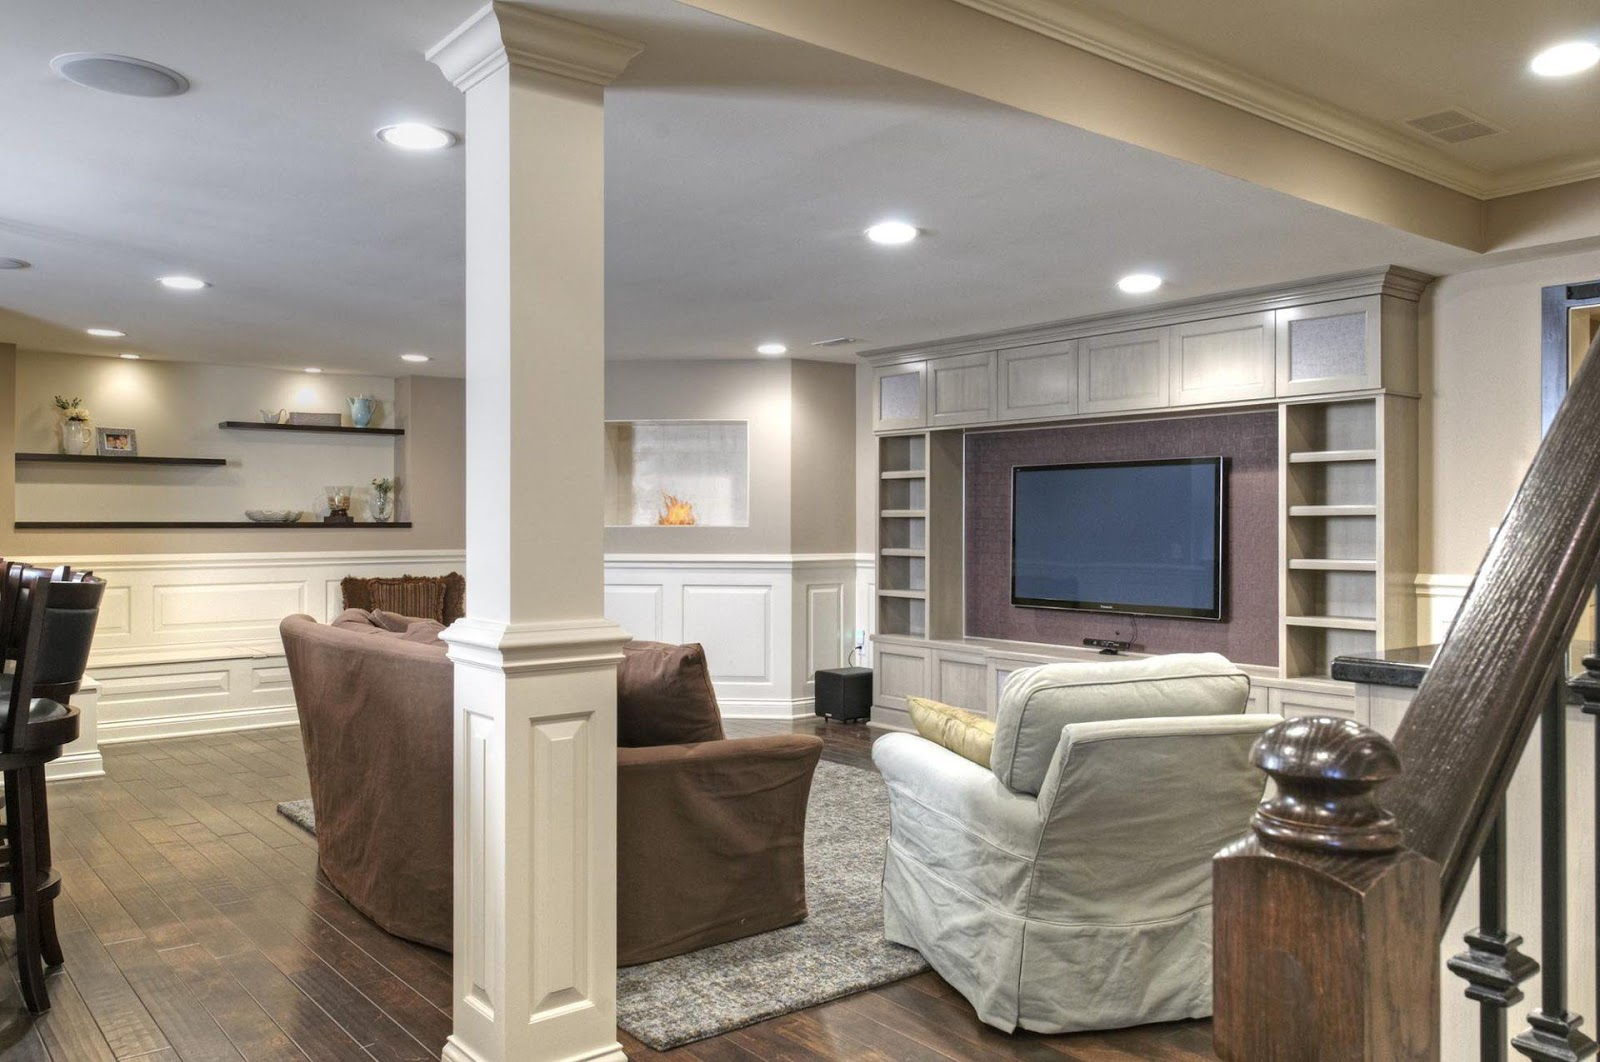 Basement Remodeling Ideas 5 Great Ideas For Your Basement Renovation Dave Fox